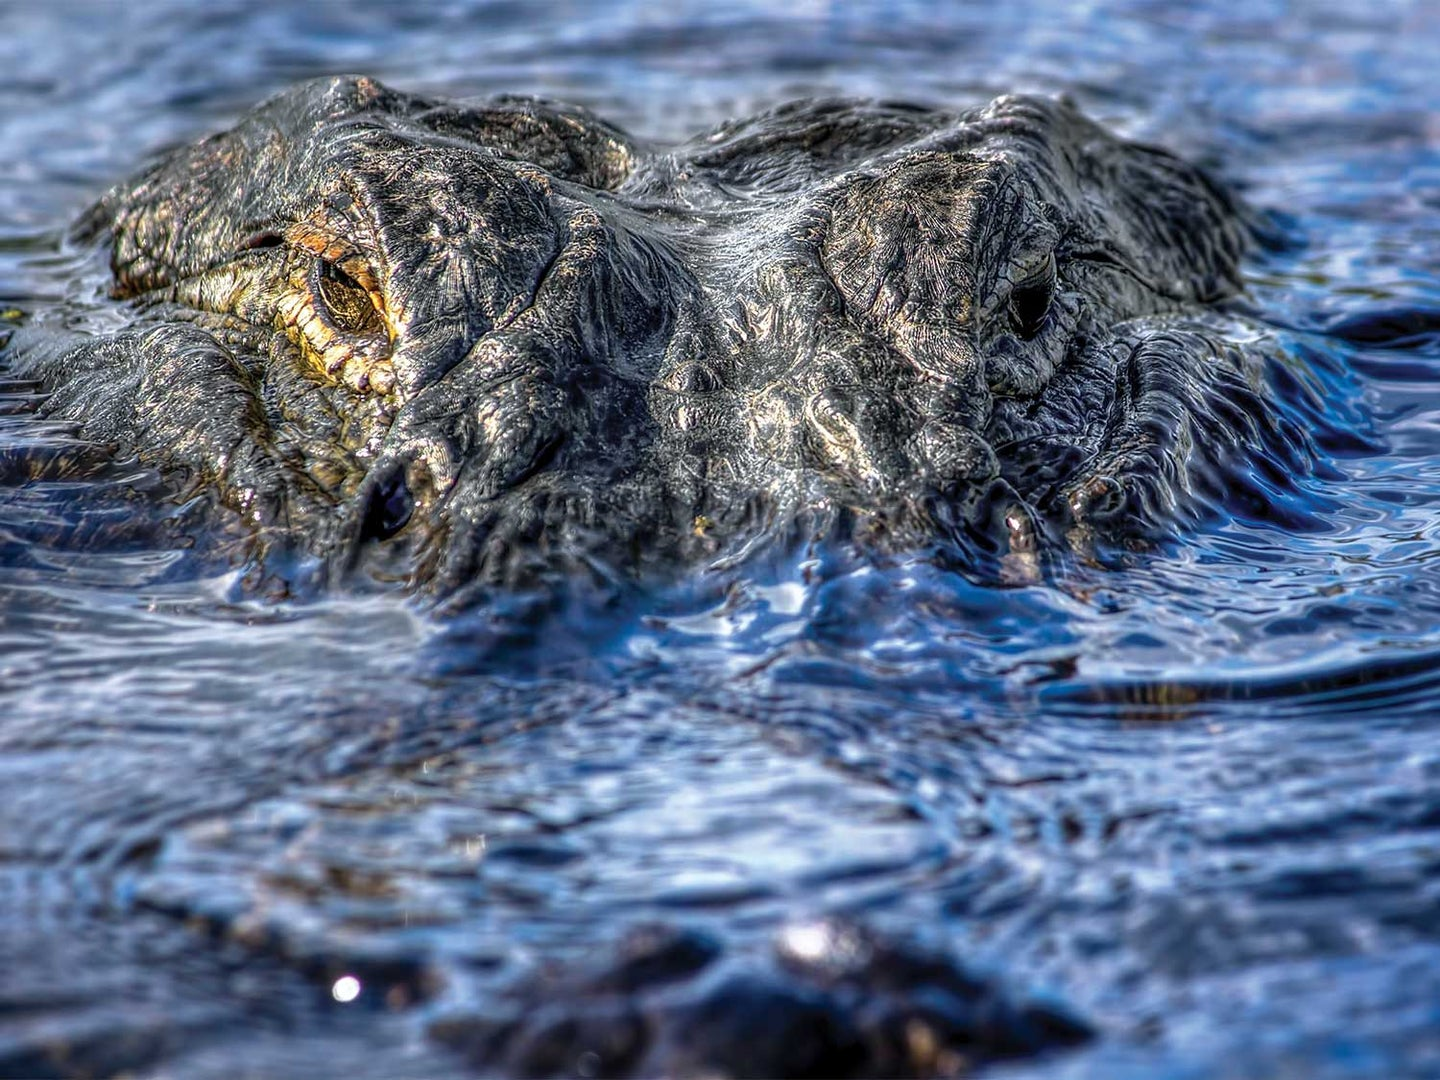 Close up detail of an alligator face breaking the surface of the water.